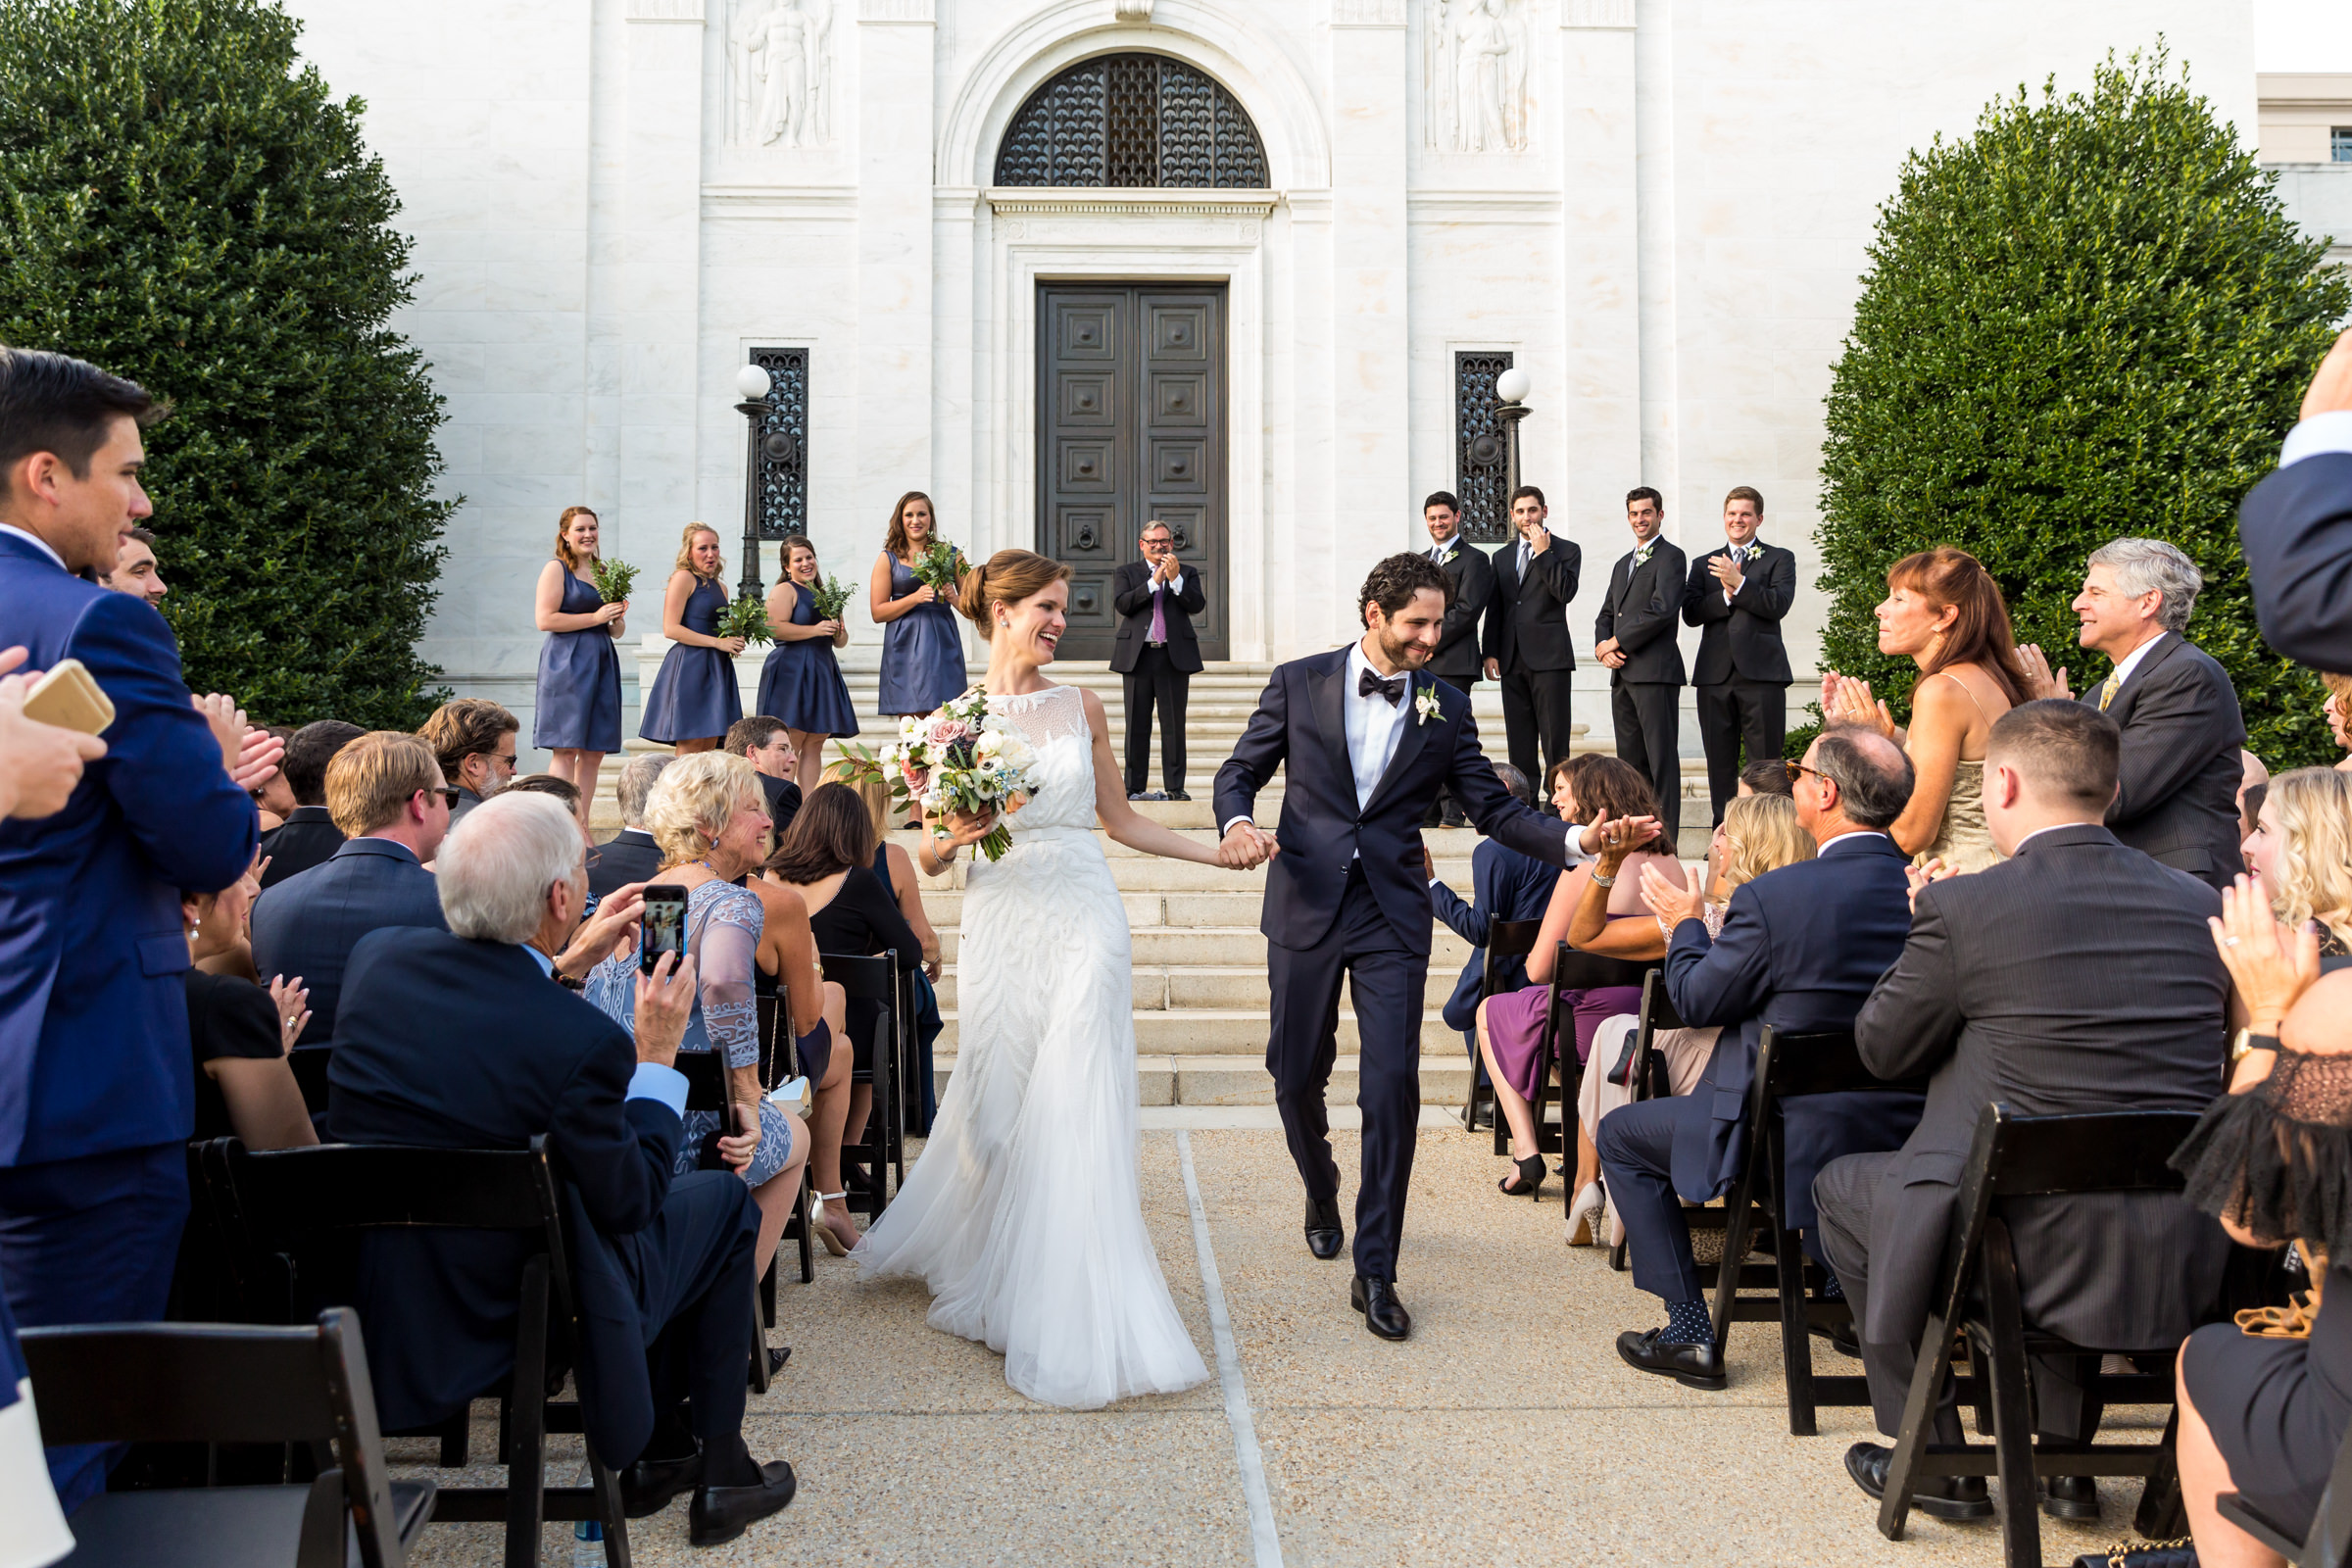 Couple walking up aisle through well wishers - photo by Procopio Photography